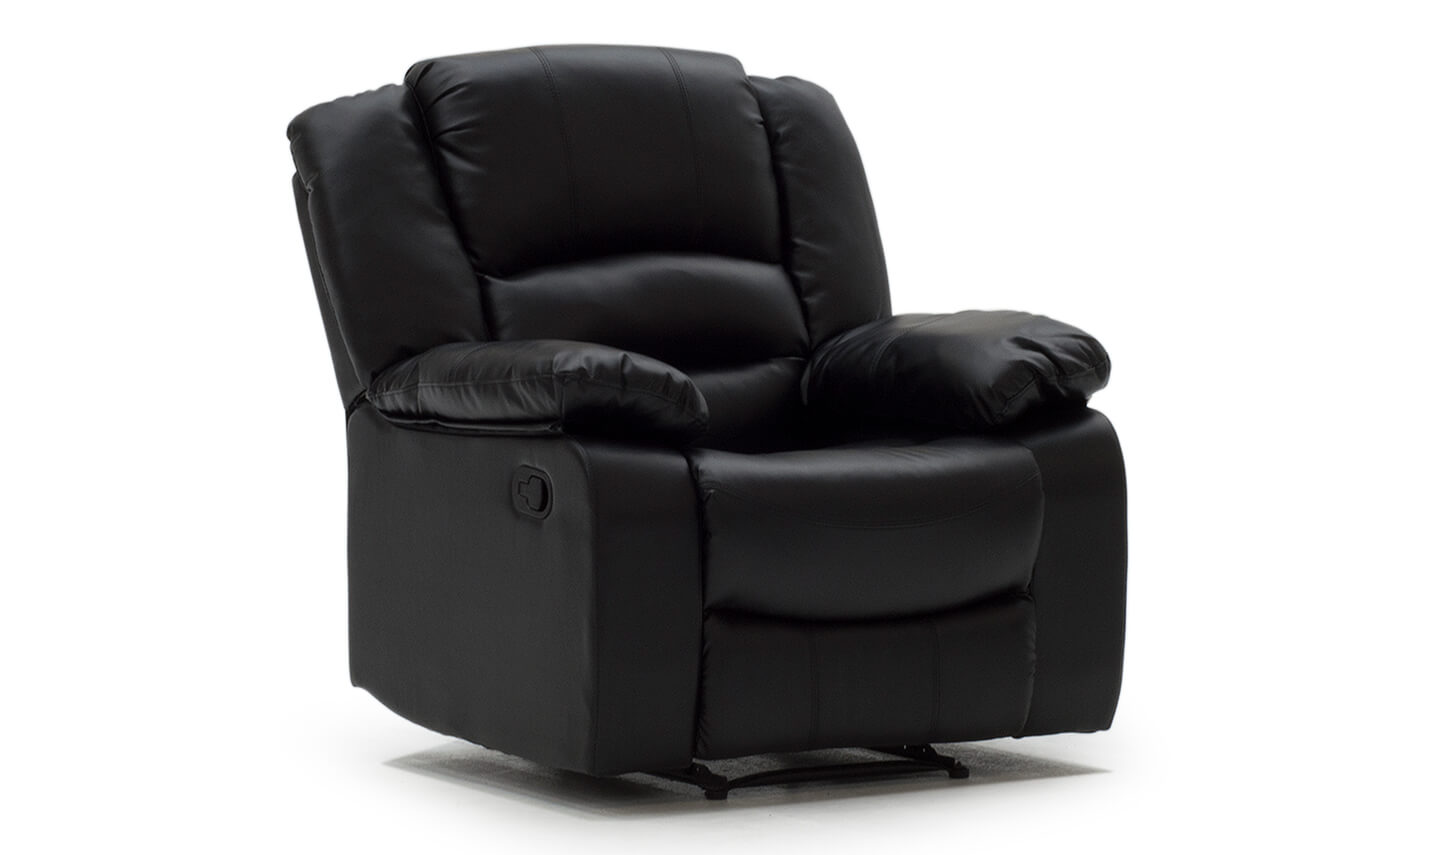 Barletto 1 Seater Recliner Black